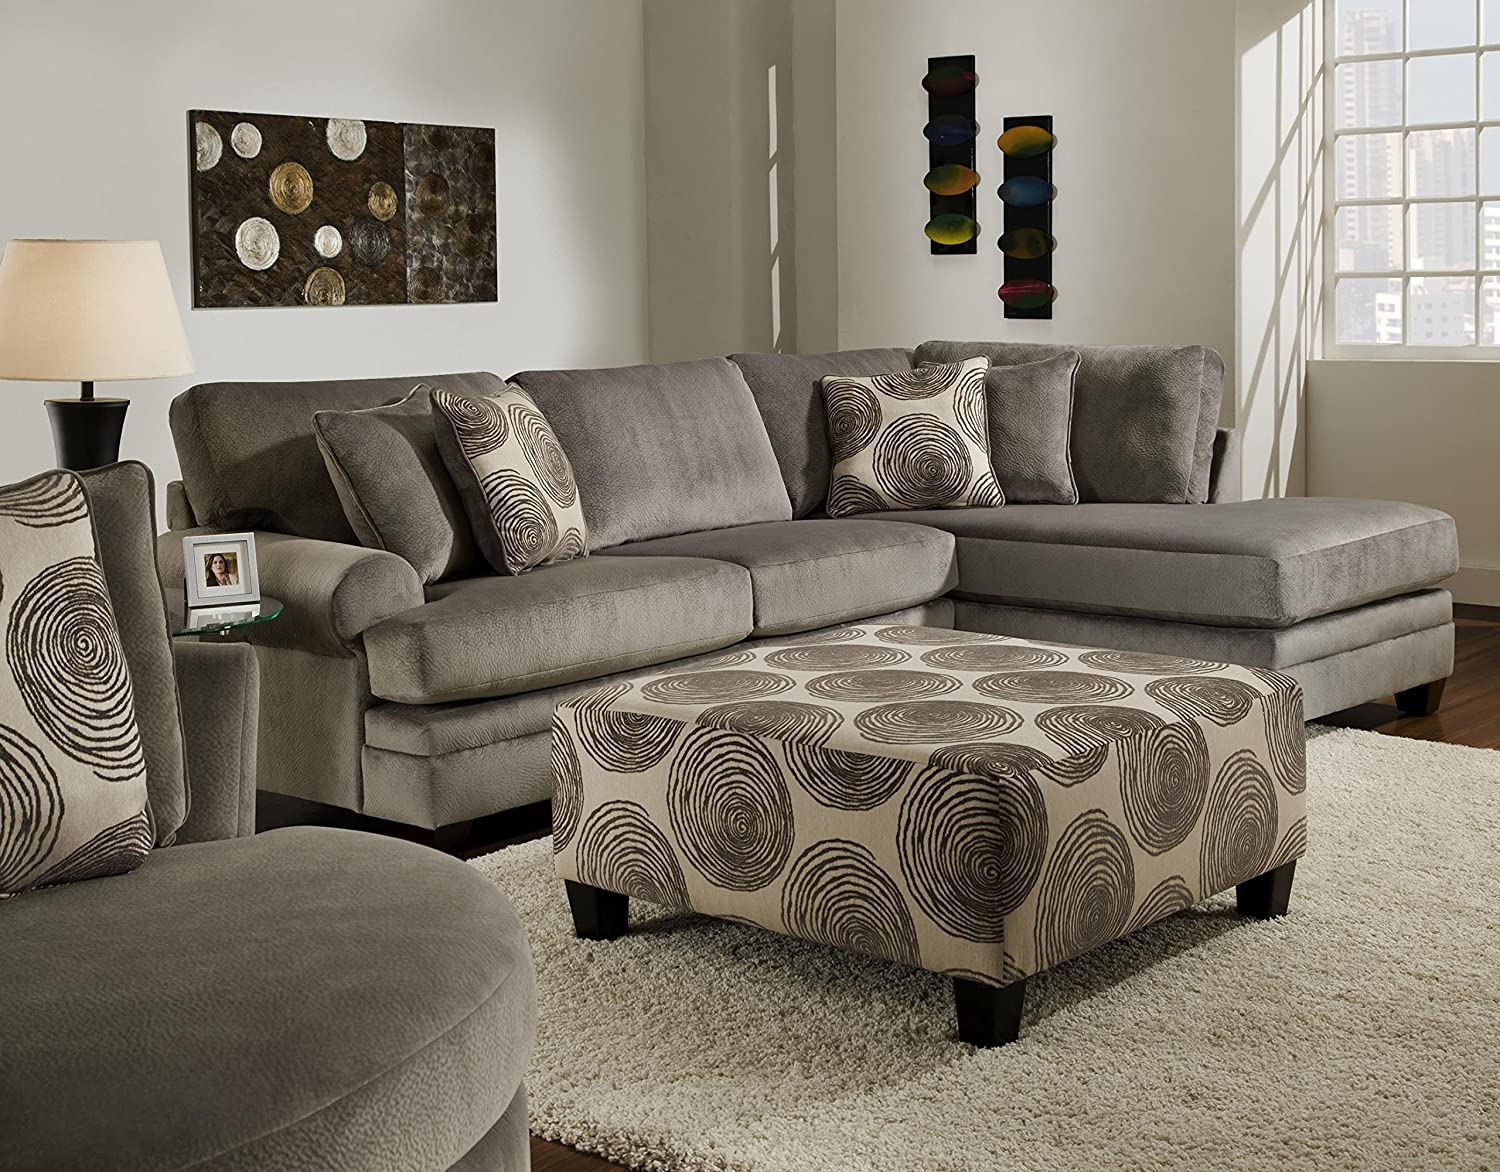 Chelsea Home Furniture Rayna 2-Piece Sectional, Groovy Smoke/Big Swirl Smoke